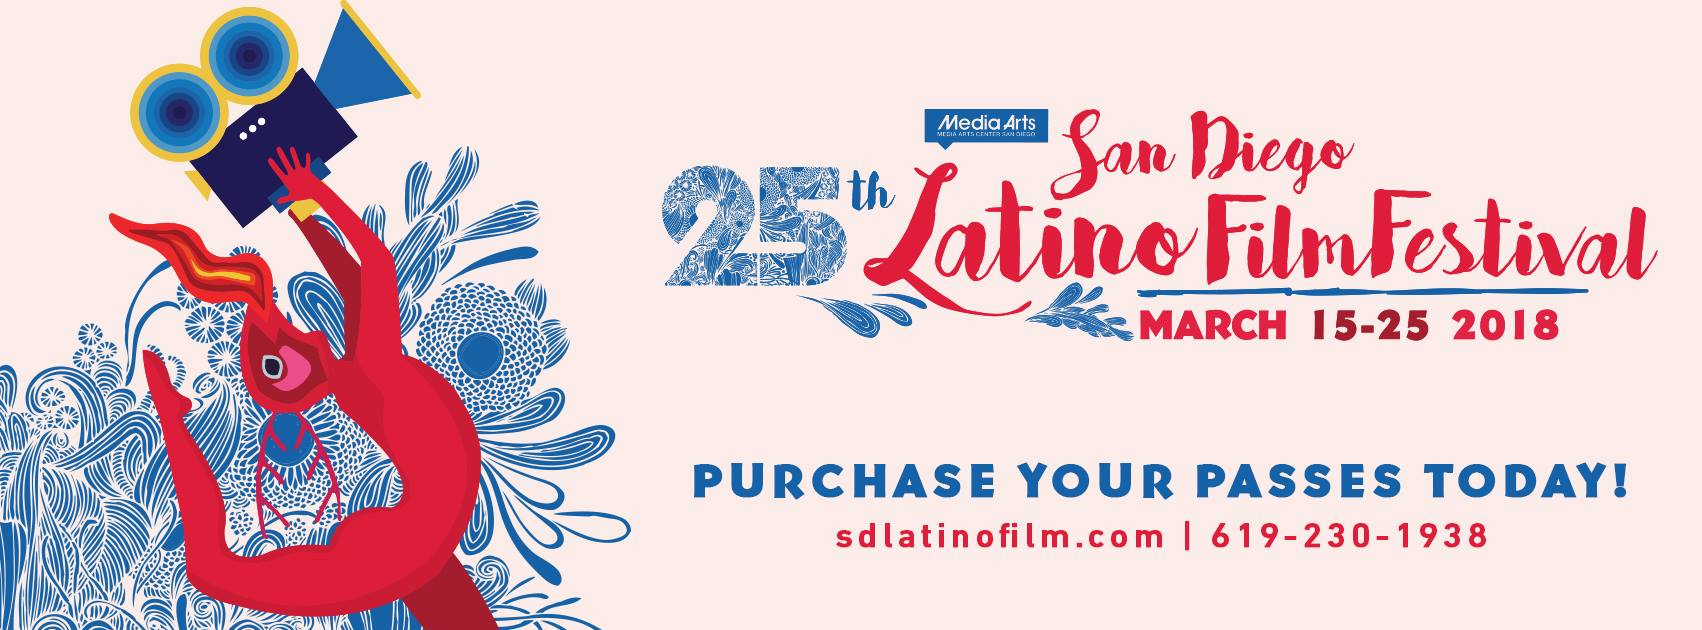 25th San Diego Latino Film Festival Now Playing (March 15-25)